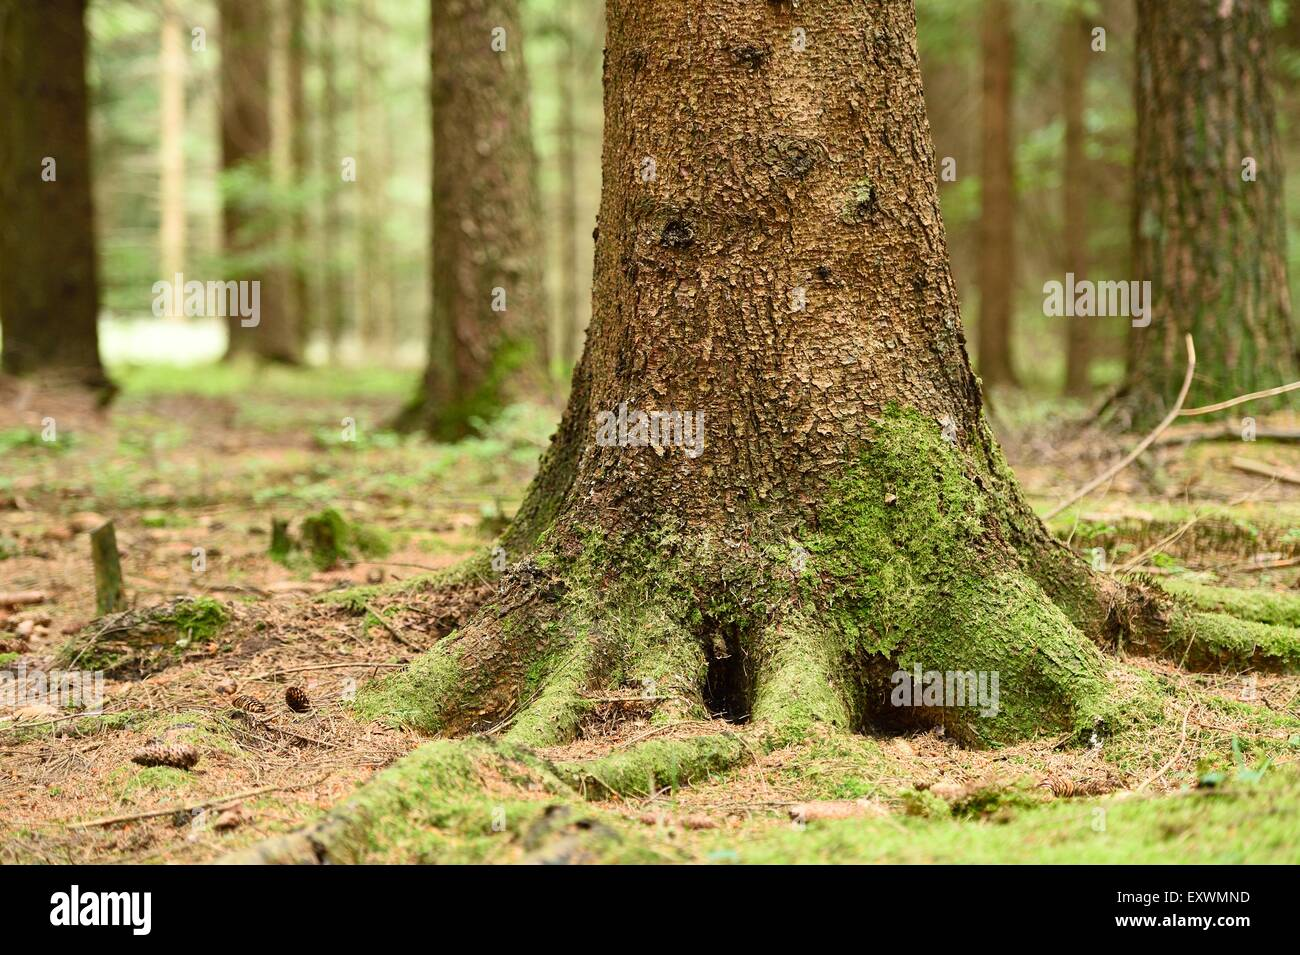 Norway spruce tree trunk in a forest, close-up - Stock Image